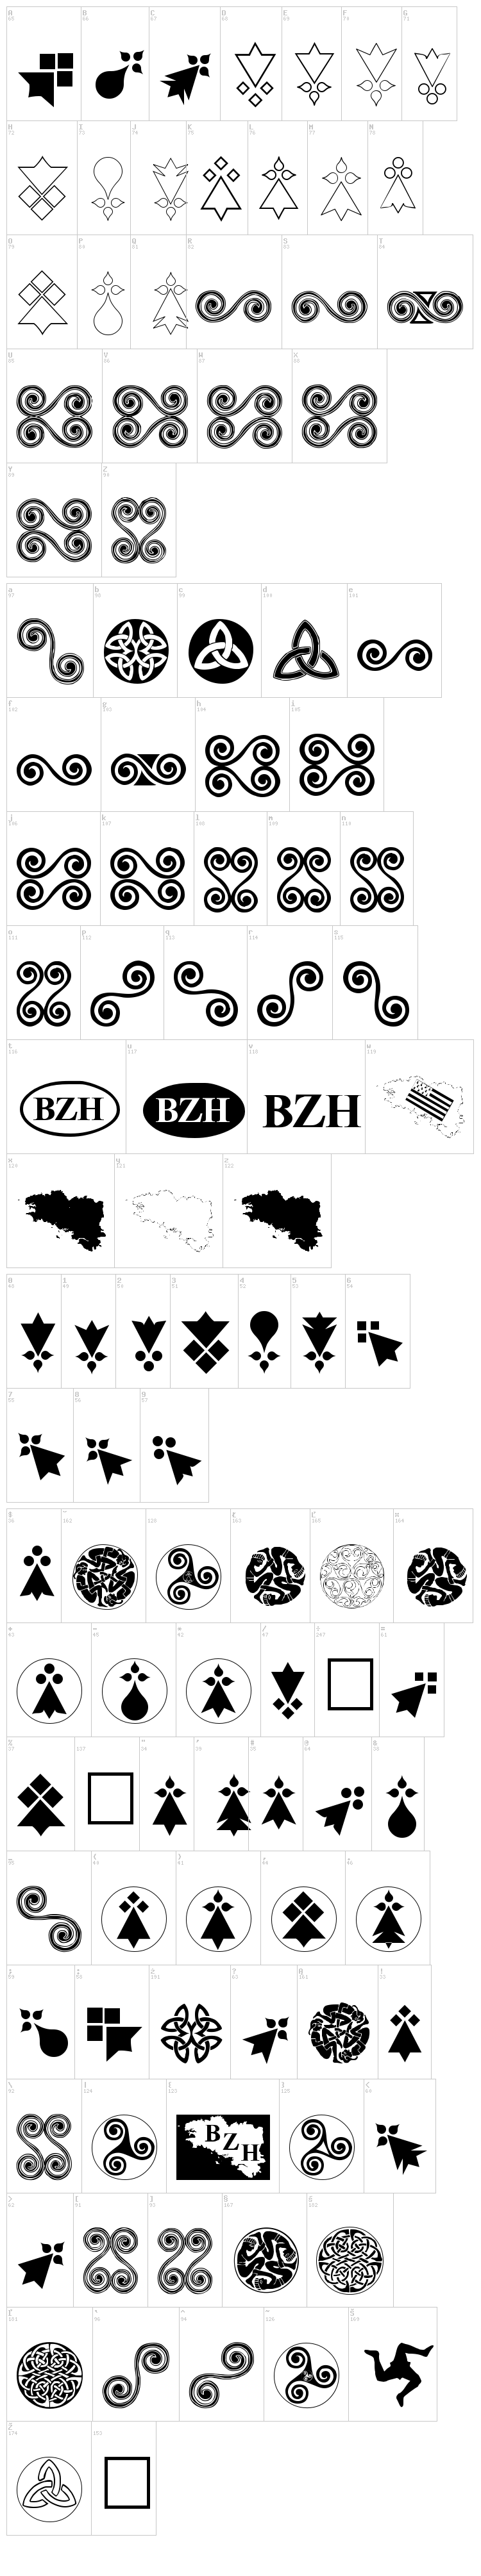 Aaa BZH font map